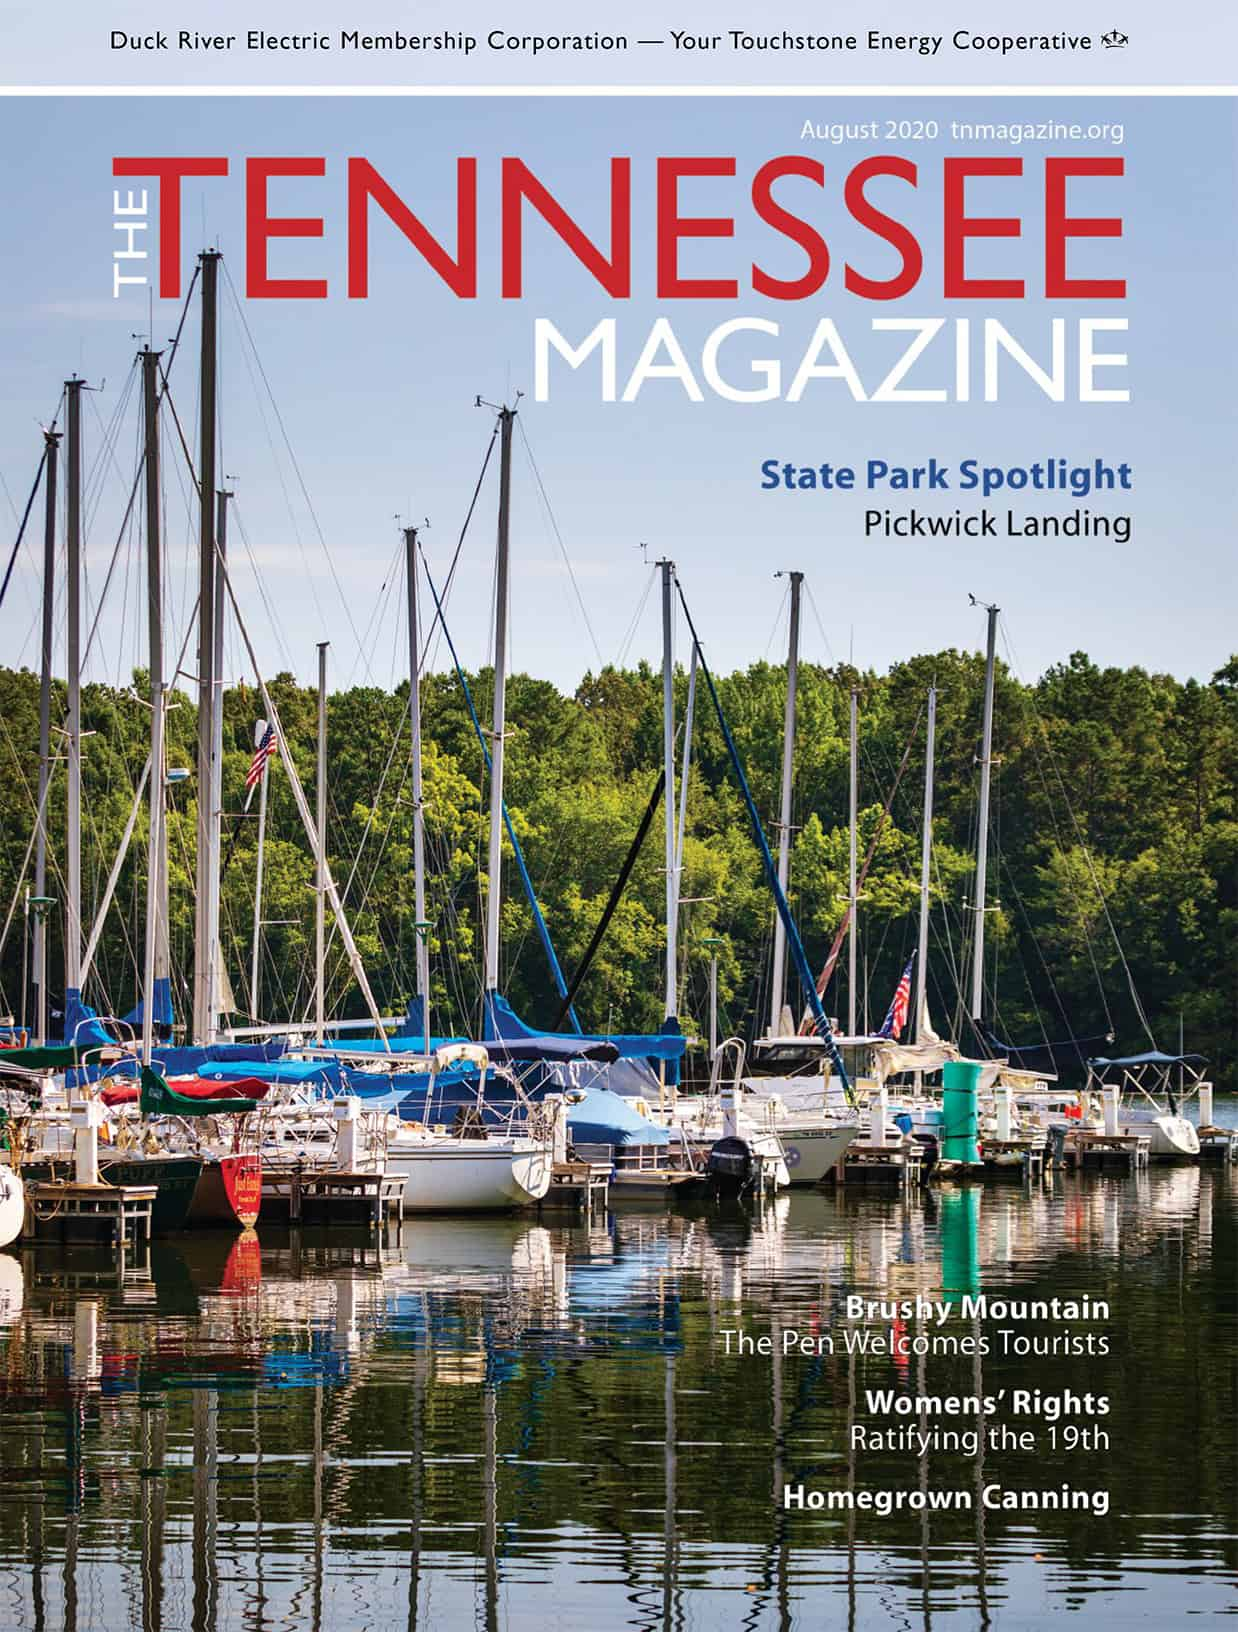 Tennessee Magazine August 2020 Cover